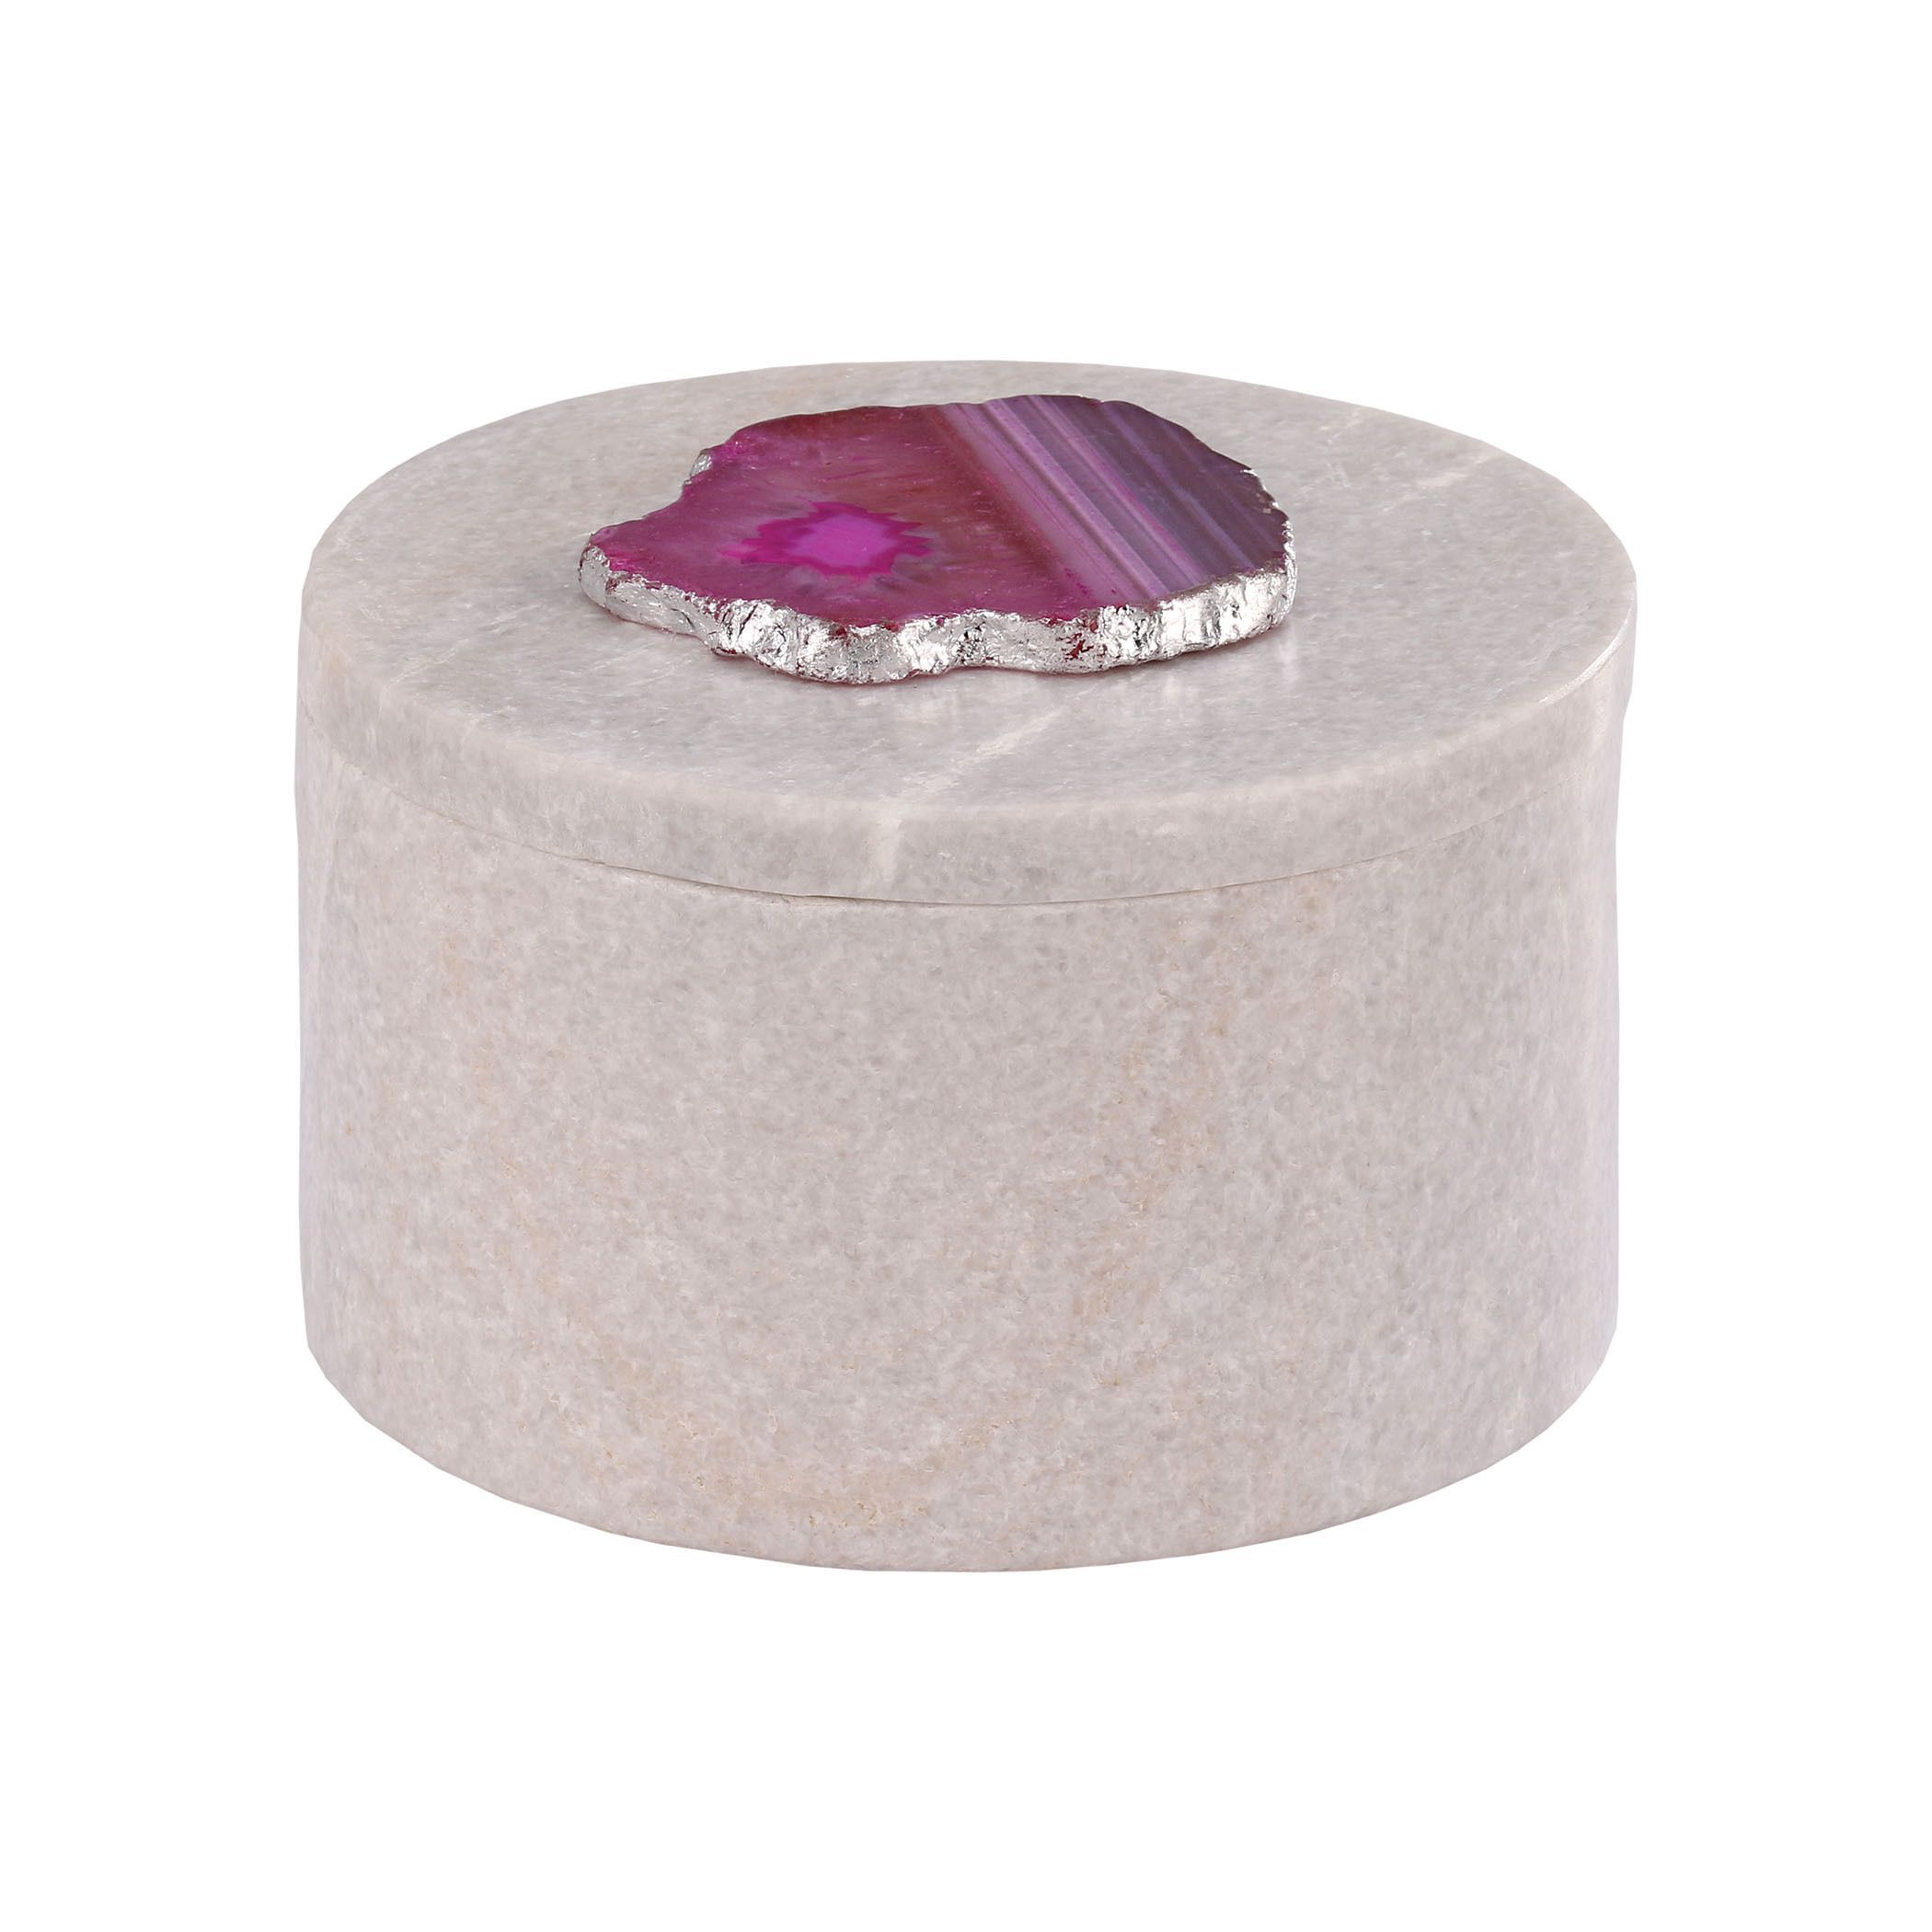 Dimond Home Antilles Round Box in and Pink Agate